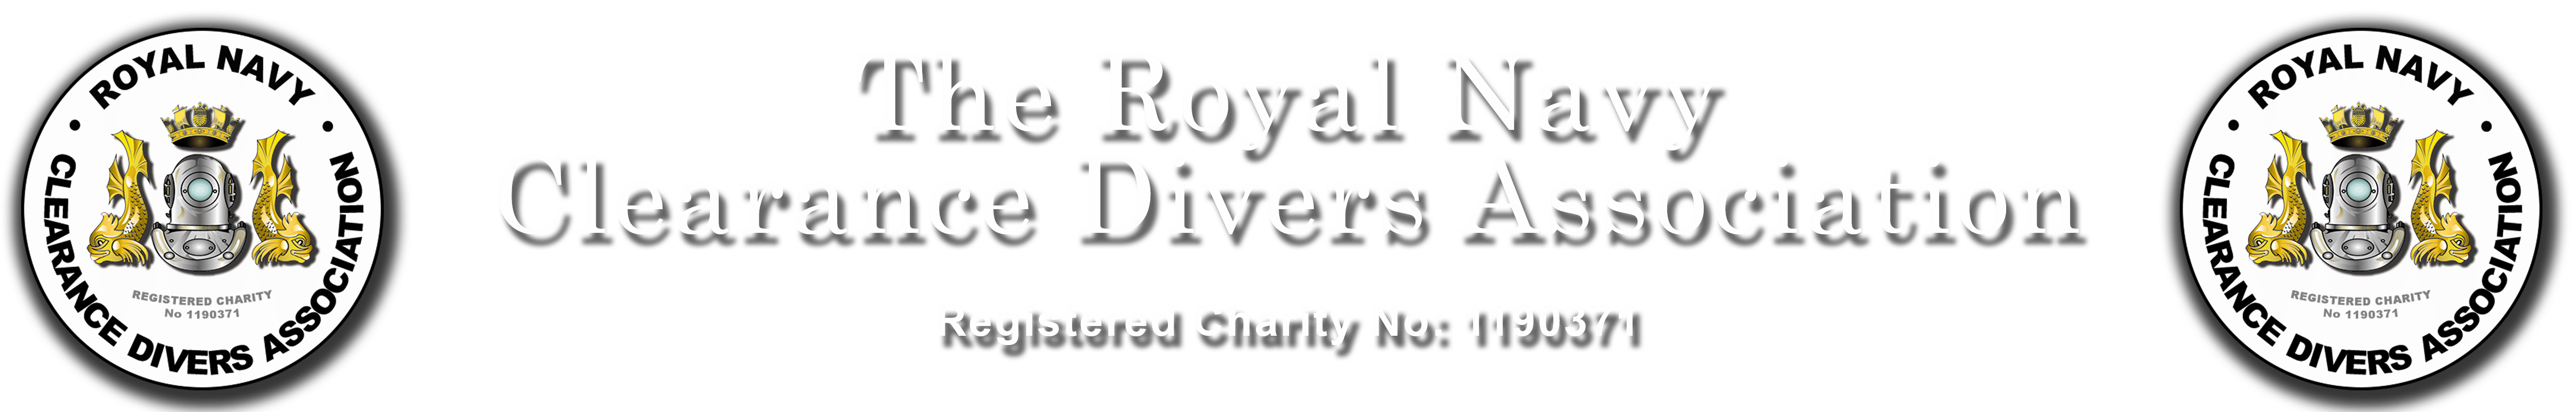 RN Clearance Divers Association